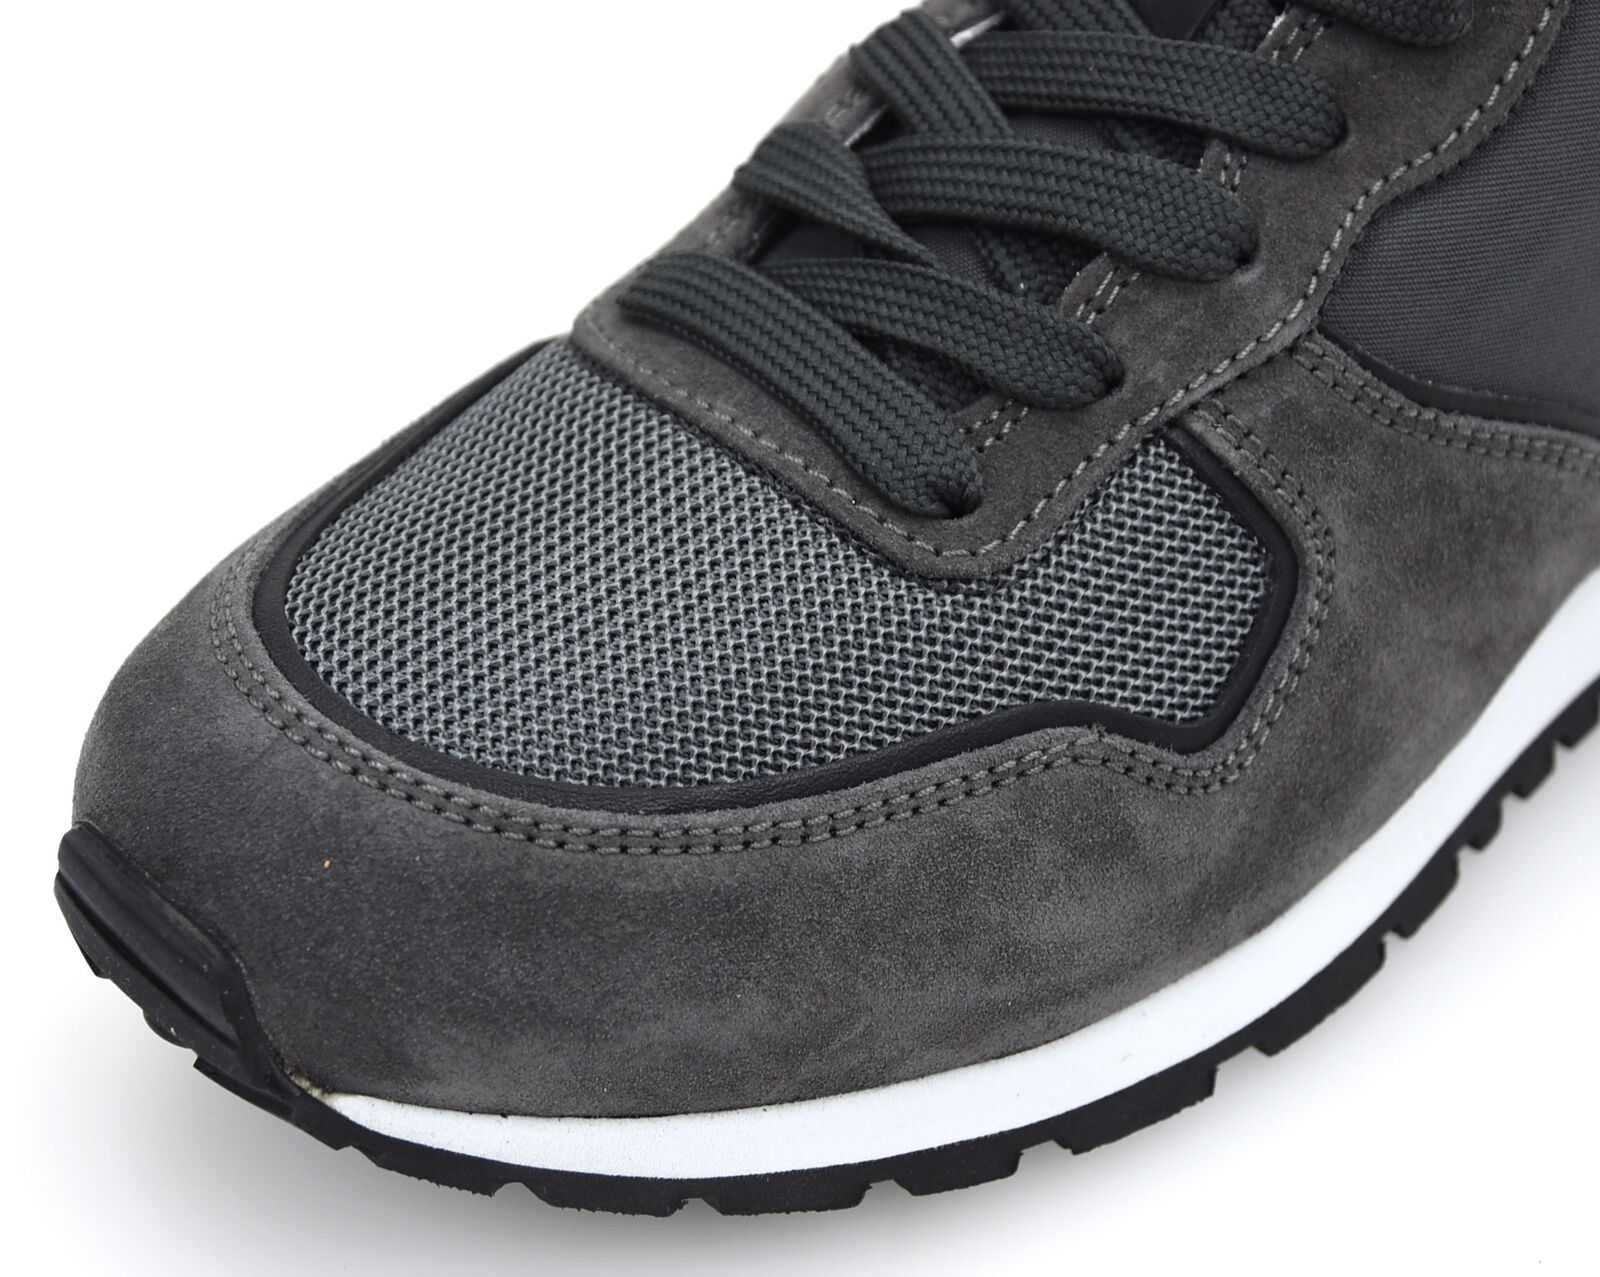 a1c8d4204 ... TOD S MAN SNEAKER SHOES SHOES SHOES CASUAL FREE TIME SUEDE CODE  XXM0YM0R360G f7d4fc ...